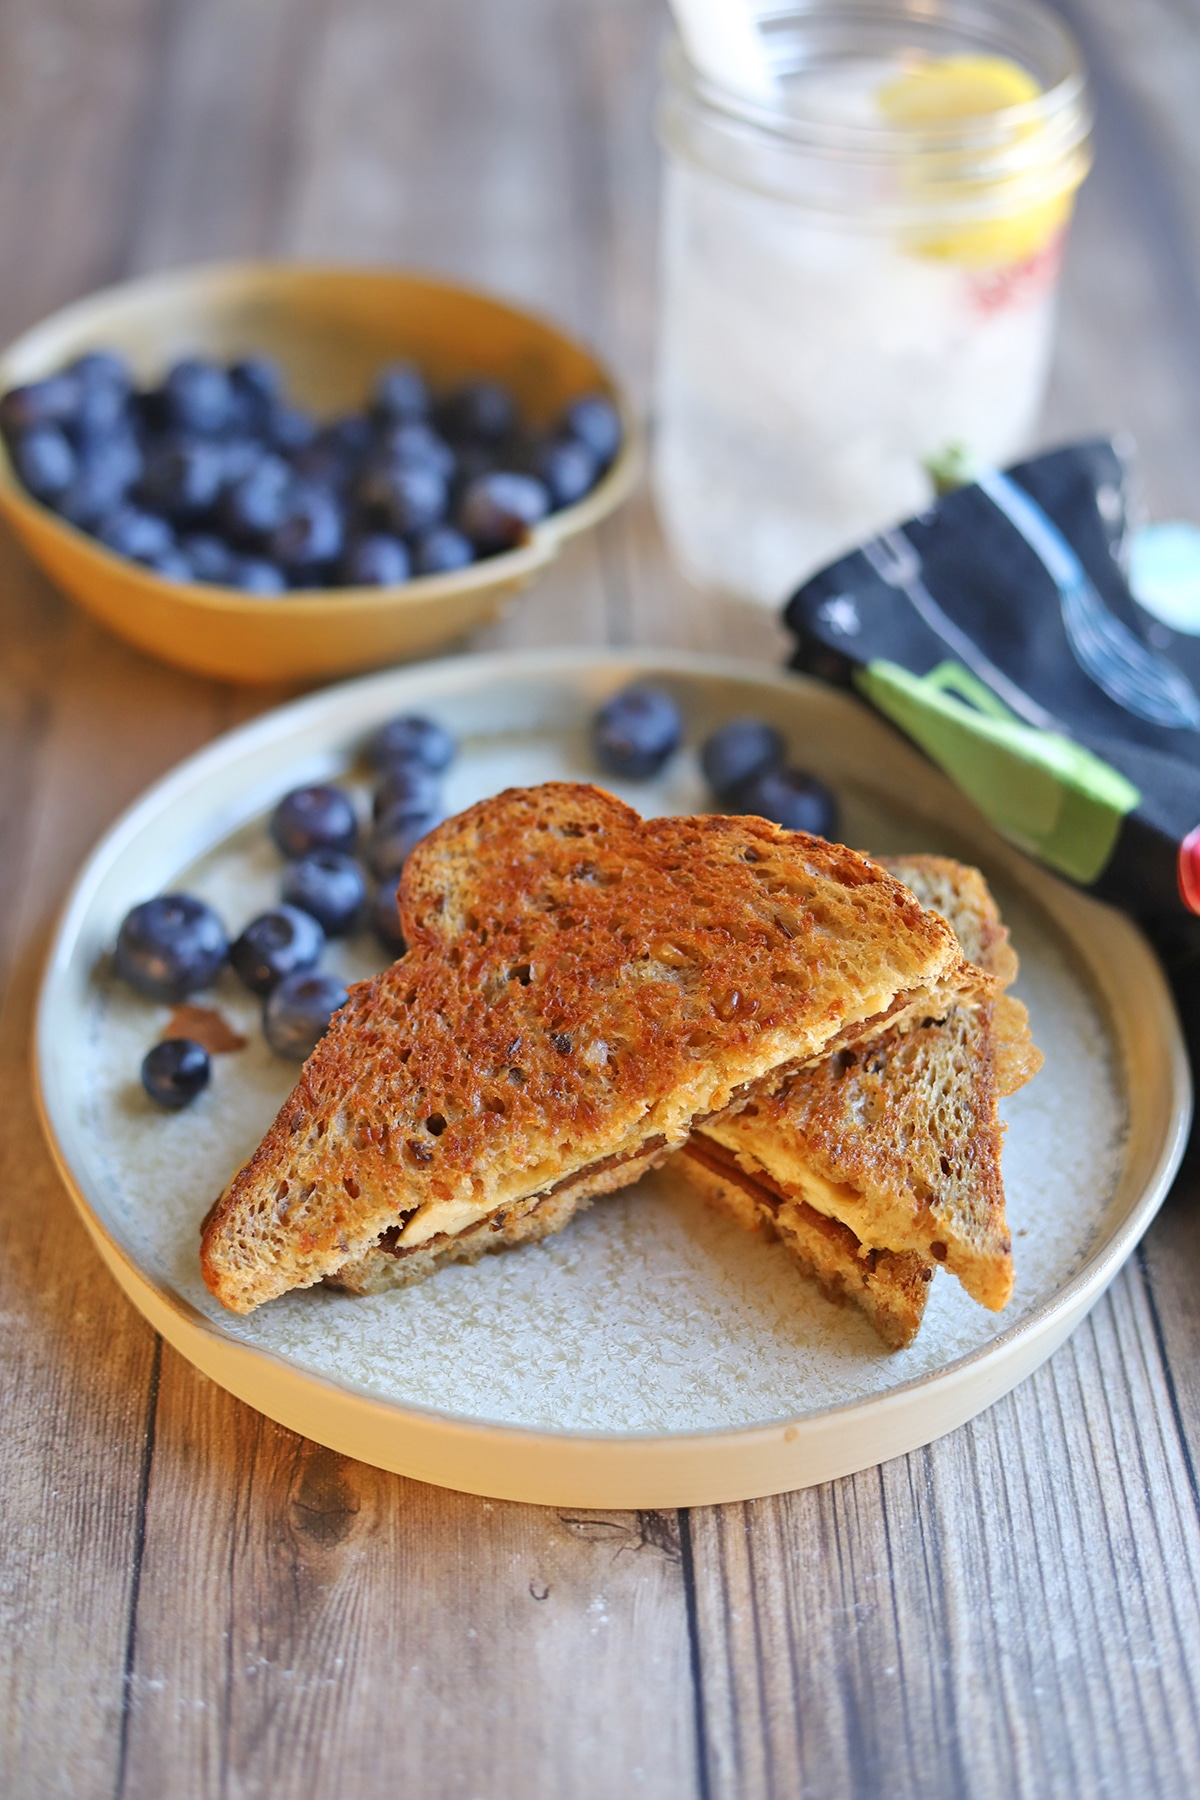 Toasted sandwich on plate with blueberries.